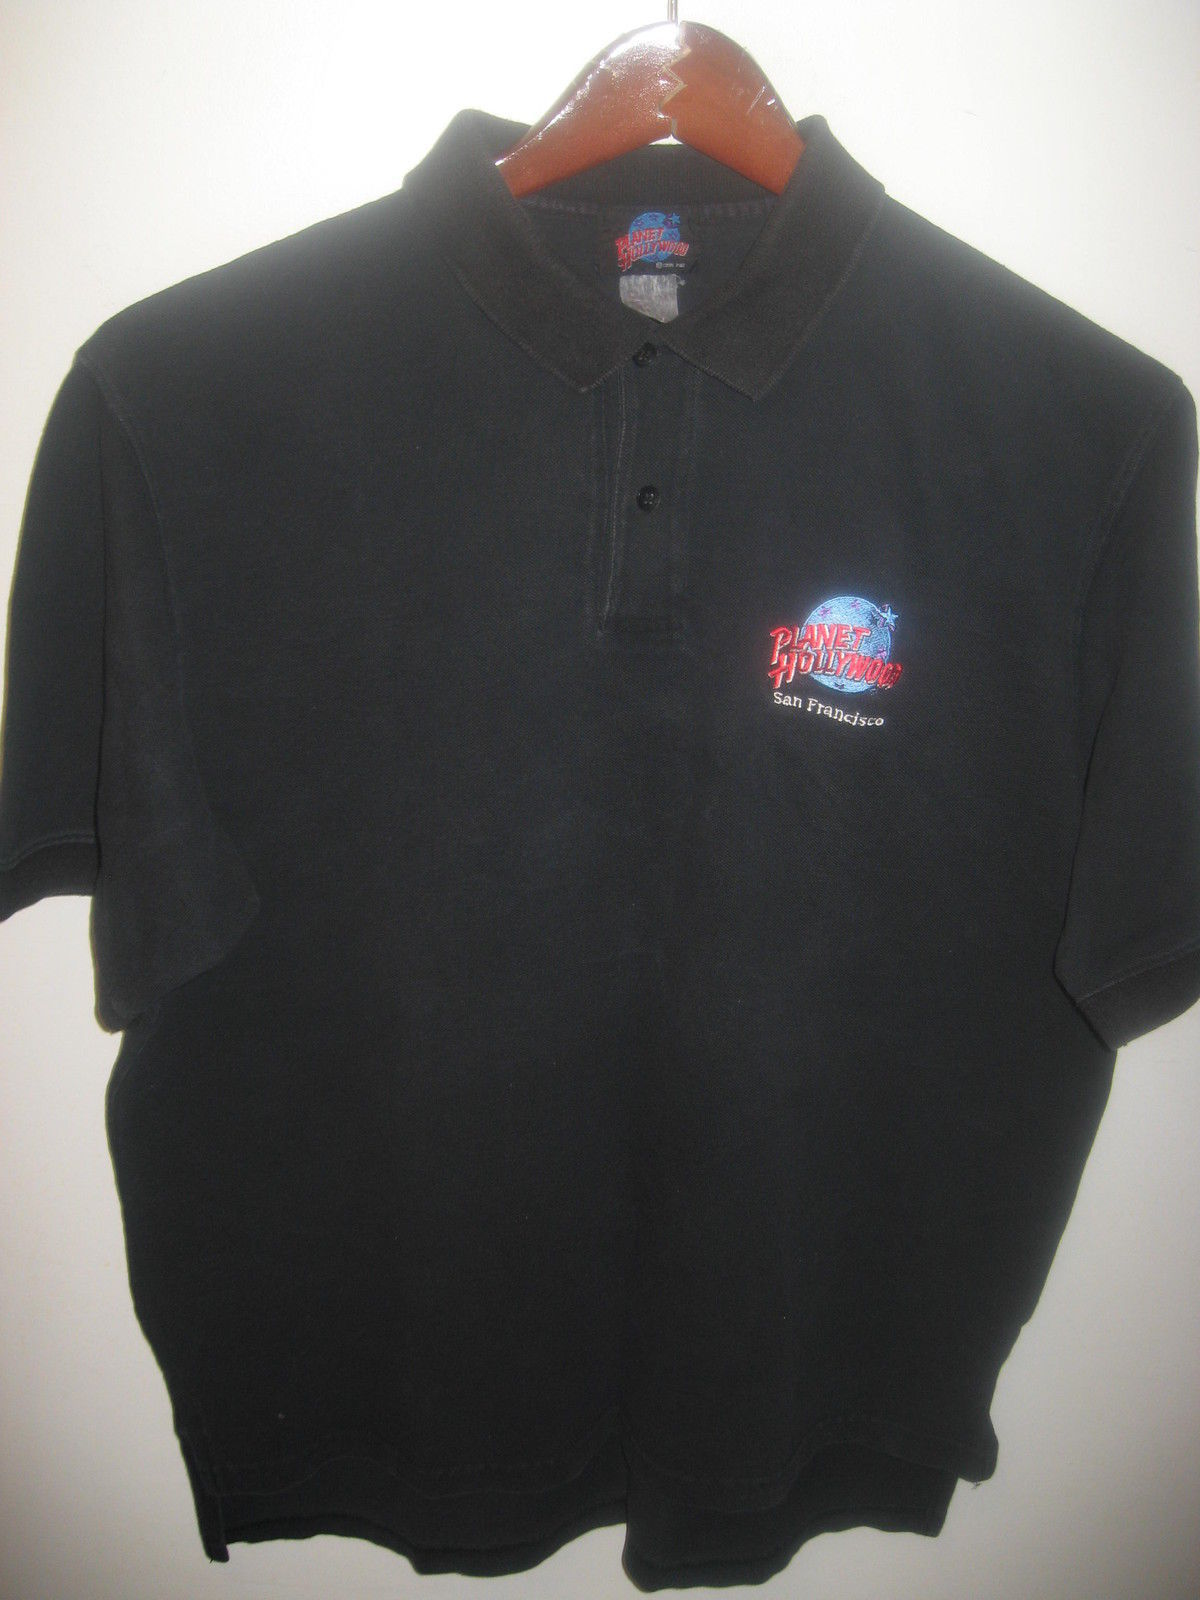 Planet hollywood san francisco vintage 1990s embroidered for Planet hollywood t shirt